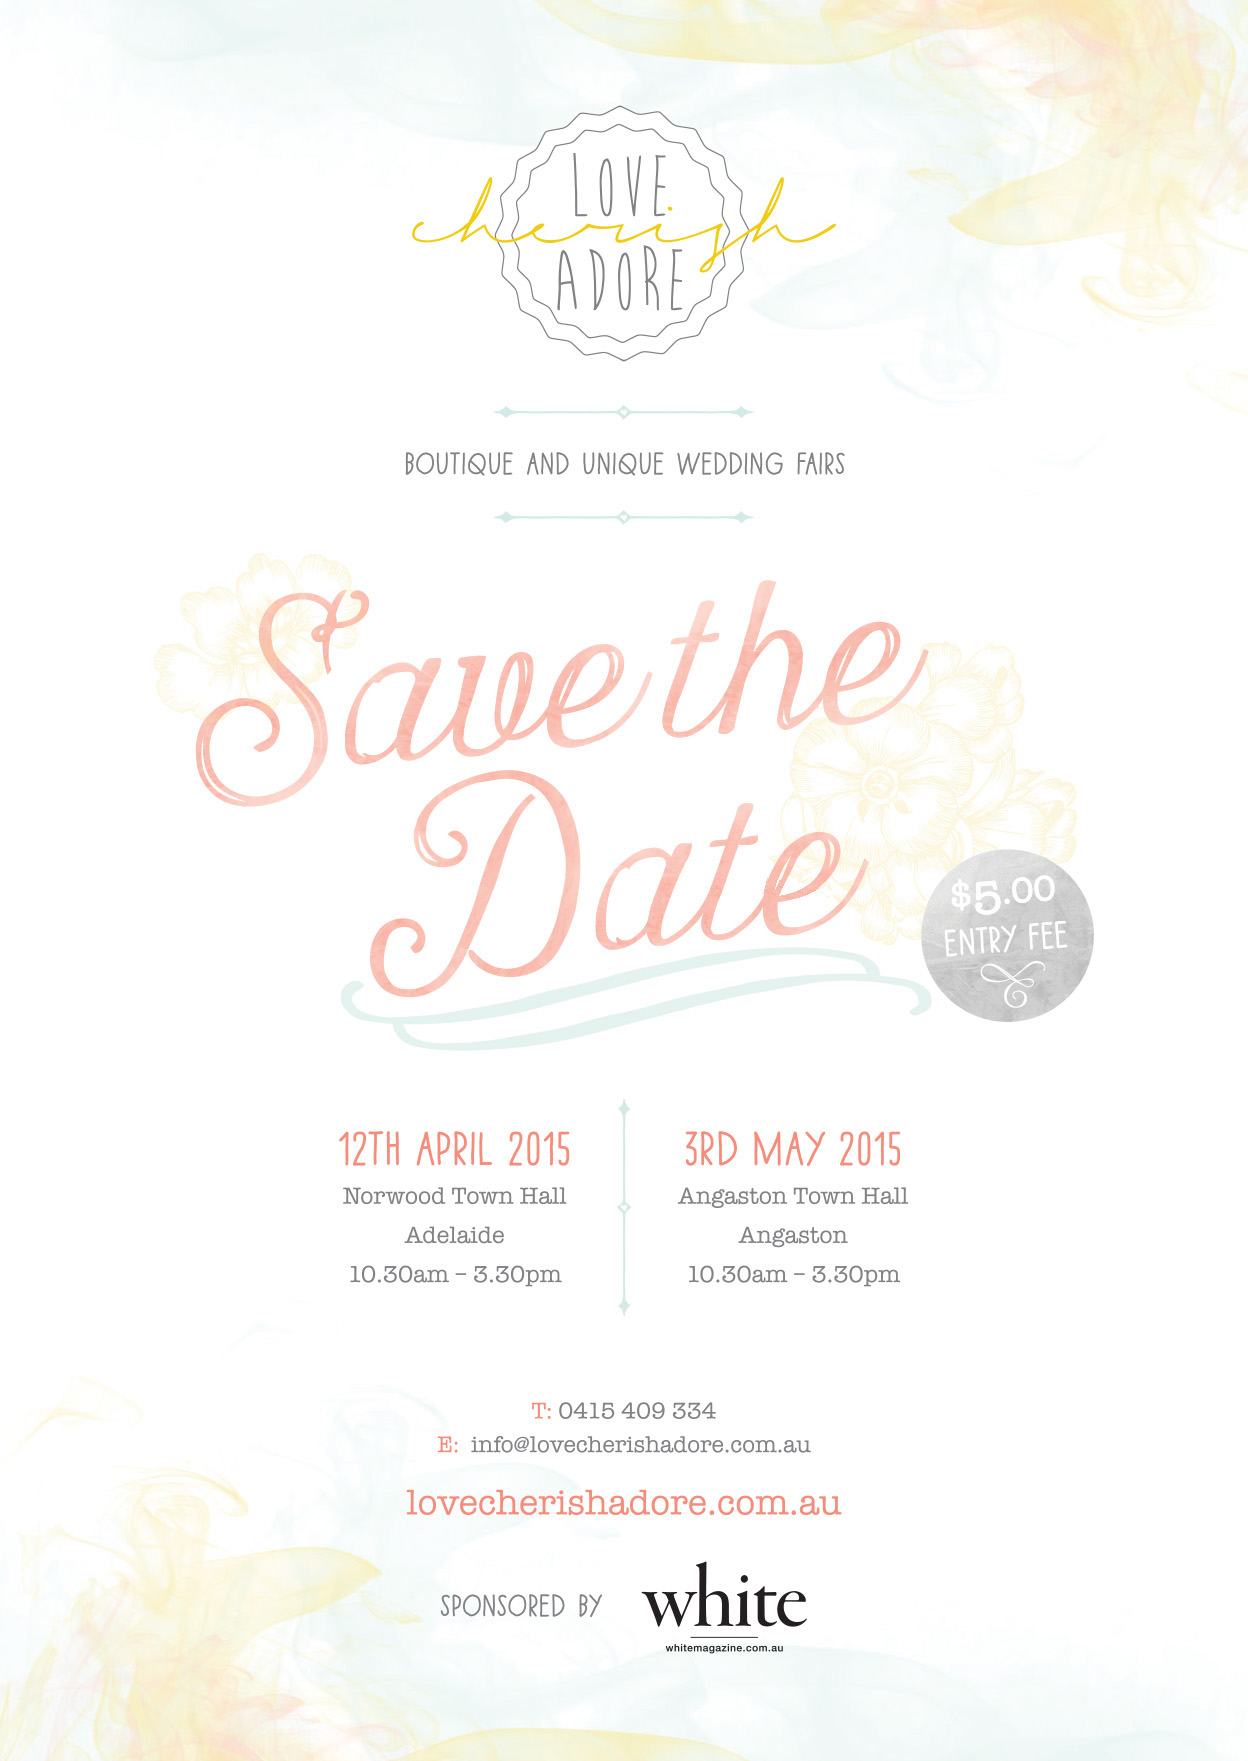 Love Cherish Adore Adelaide Bridal Fair Wedding Expo Vintage Indie Sail and Swan Wedding Invitations